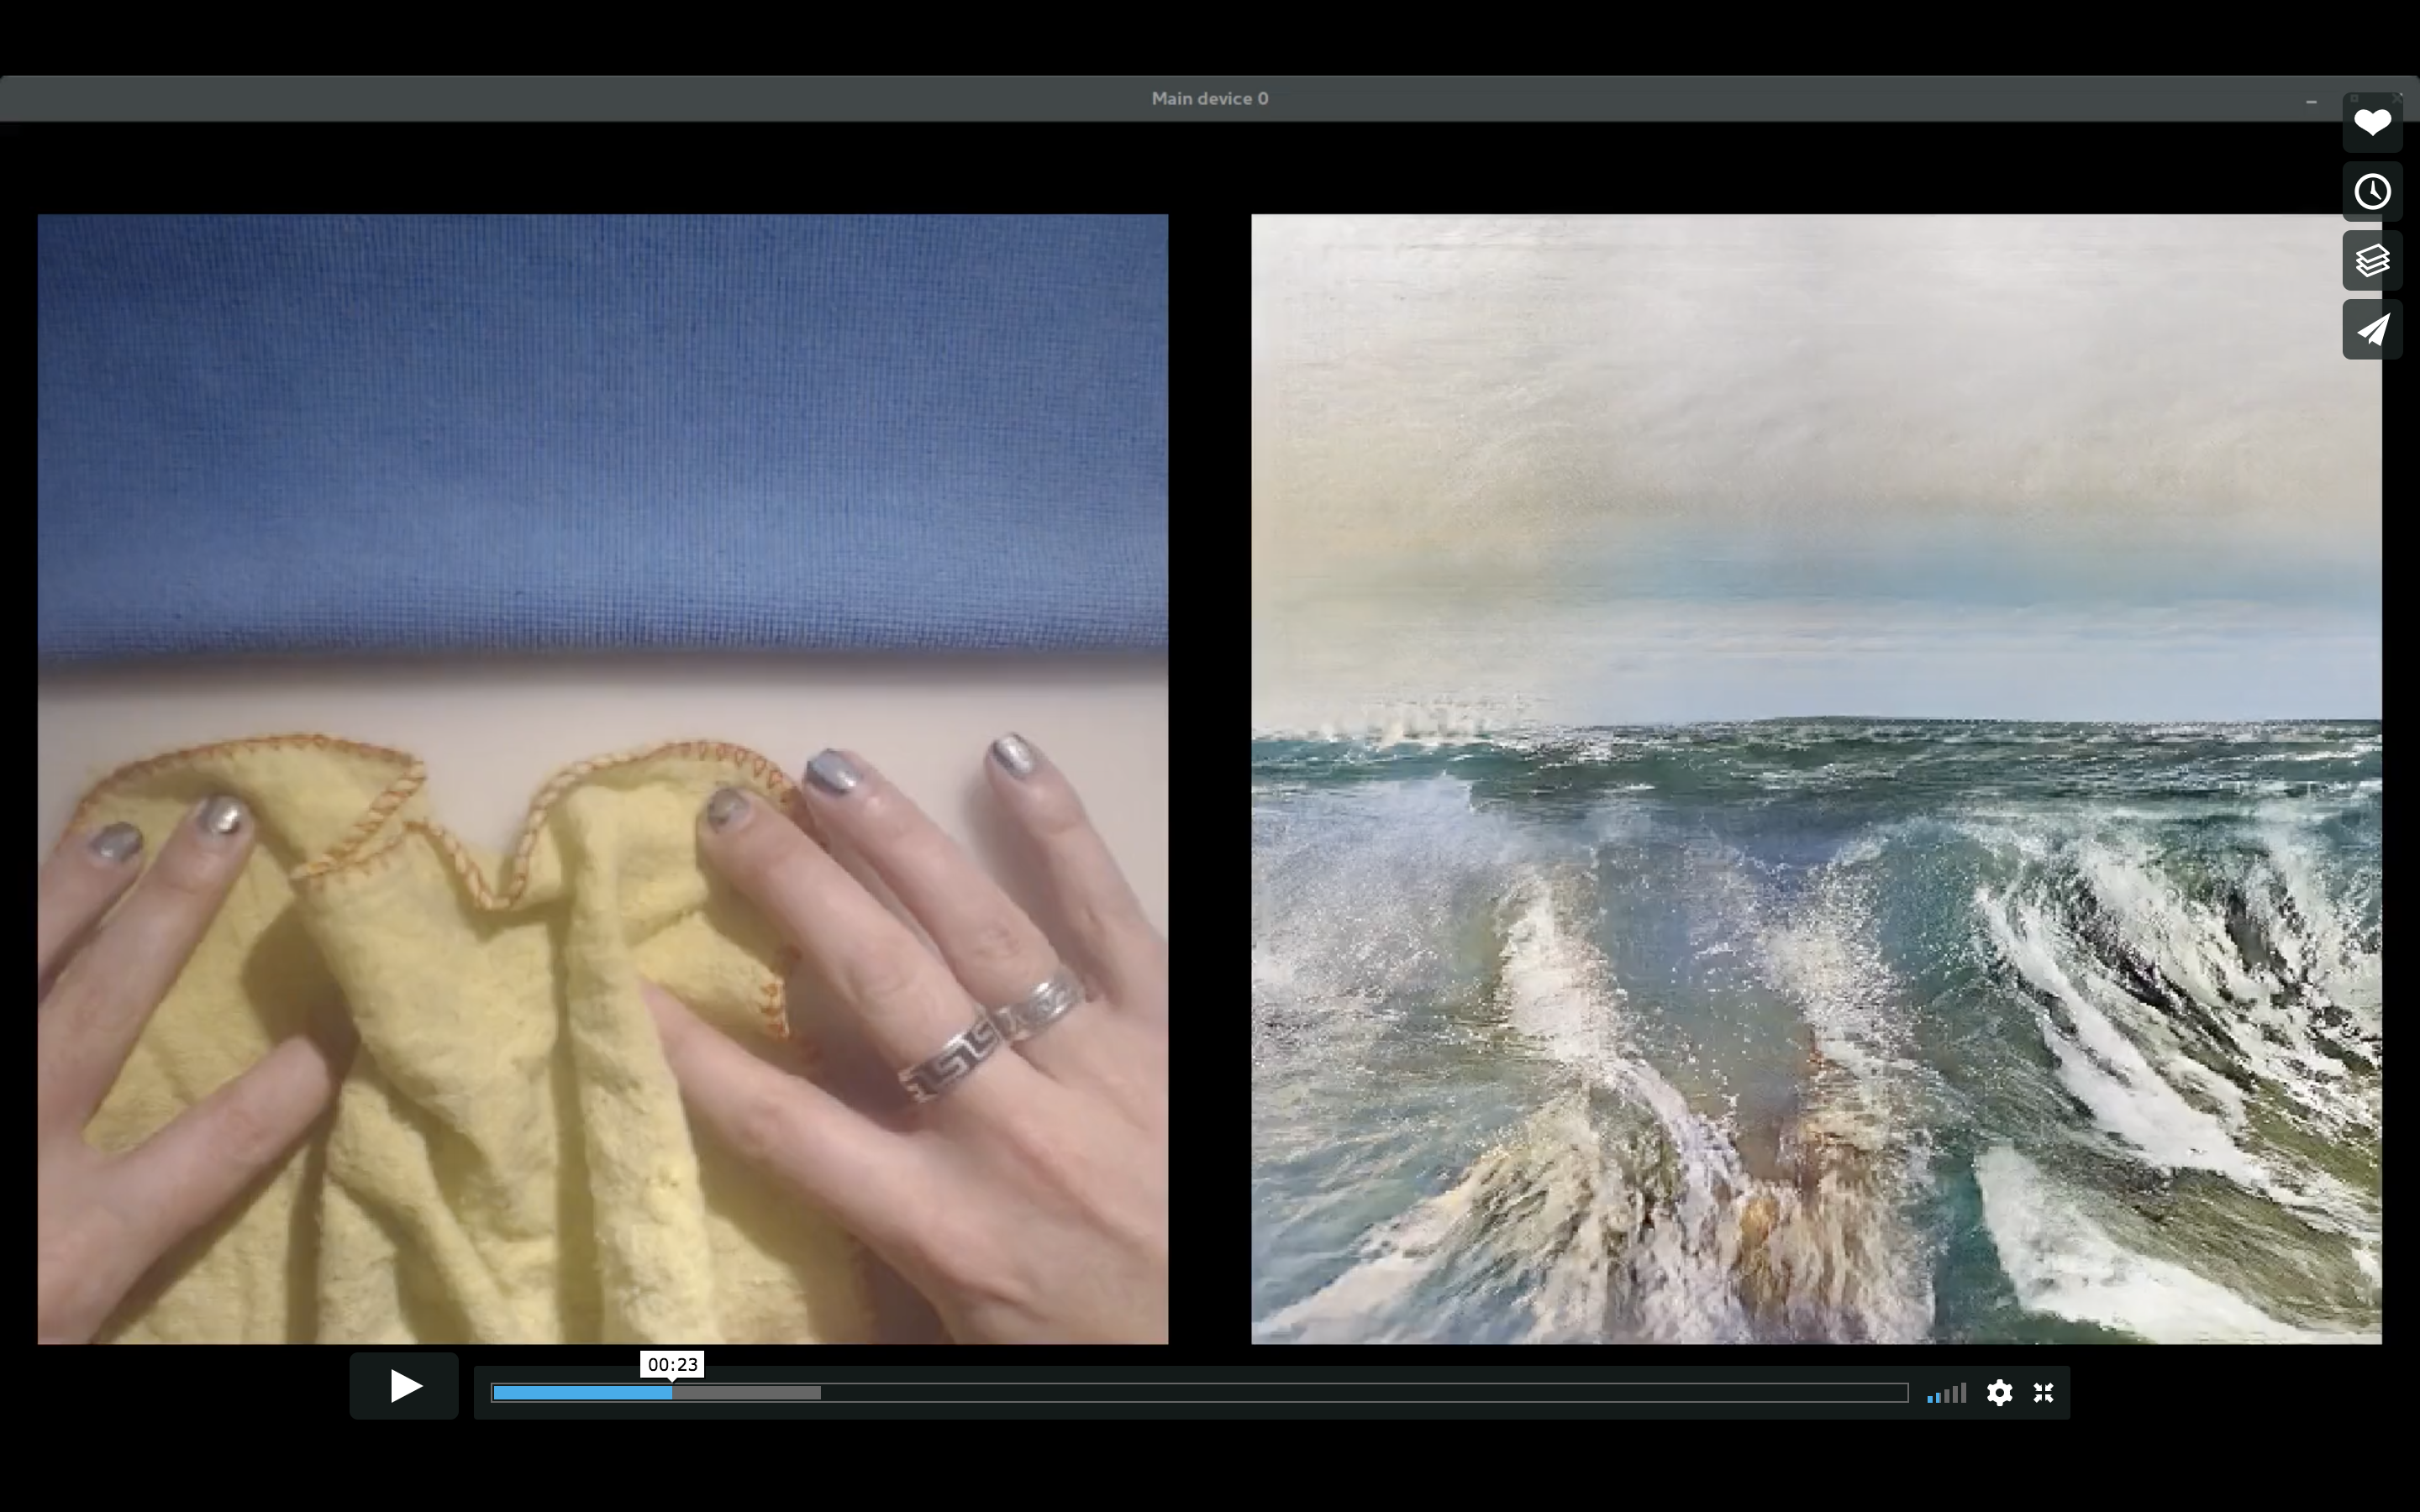 A screenshot of the video by Memo Atken. On the left is a blanket being scrunched up by hands; on the right is an image that looks like a painting of waves, where the shape of the waves matches the position of the hands and blanket.